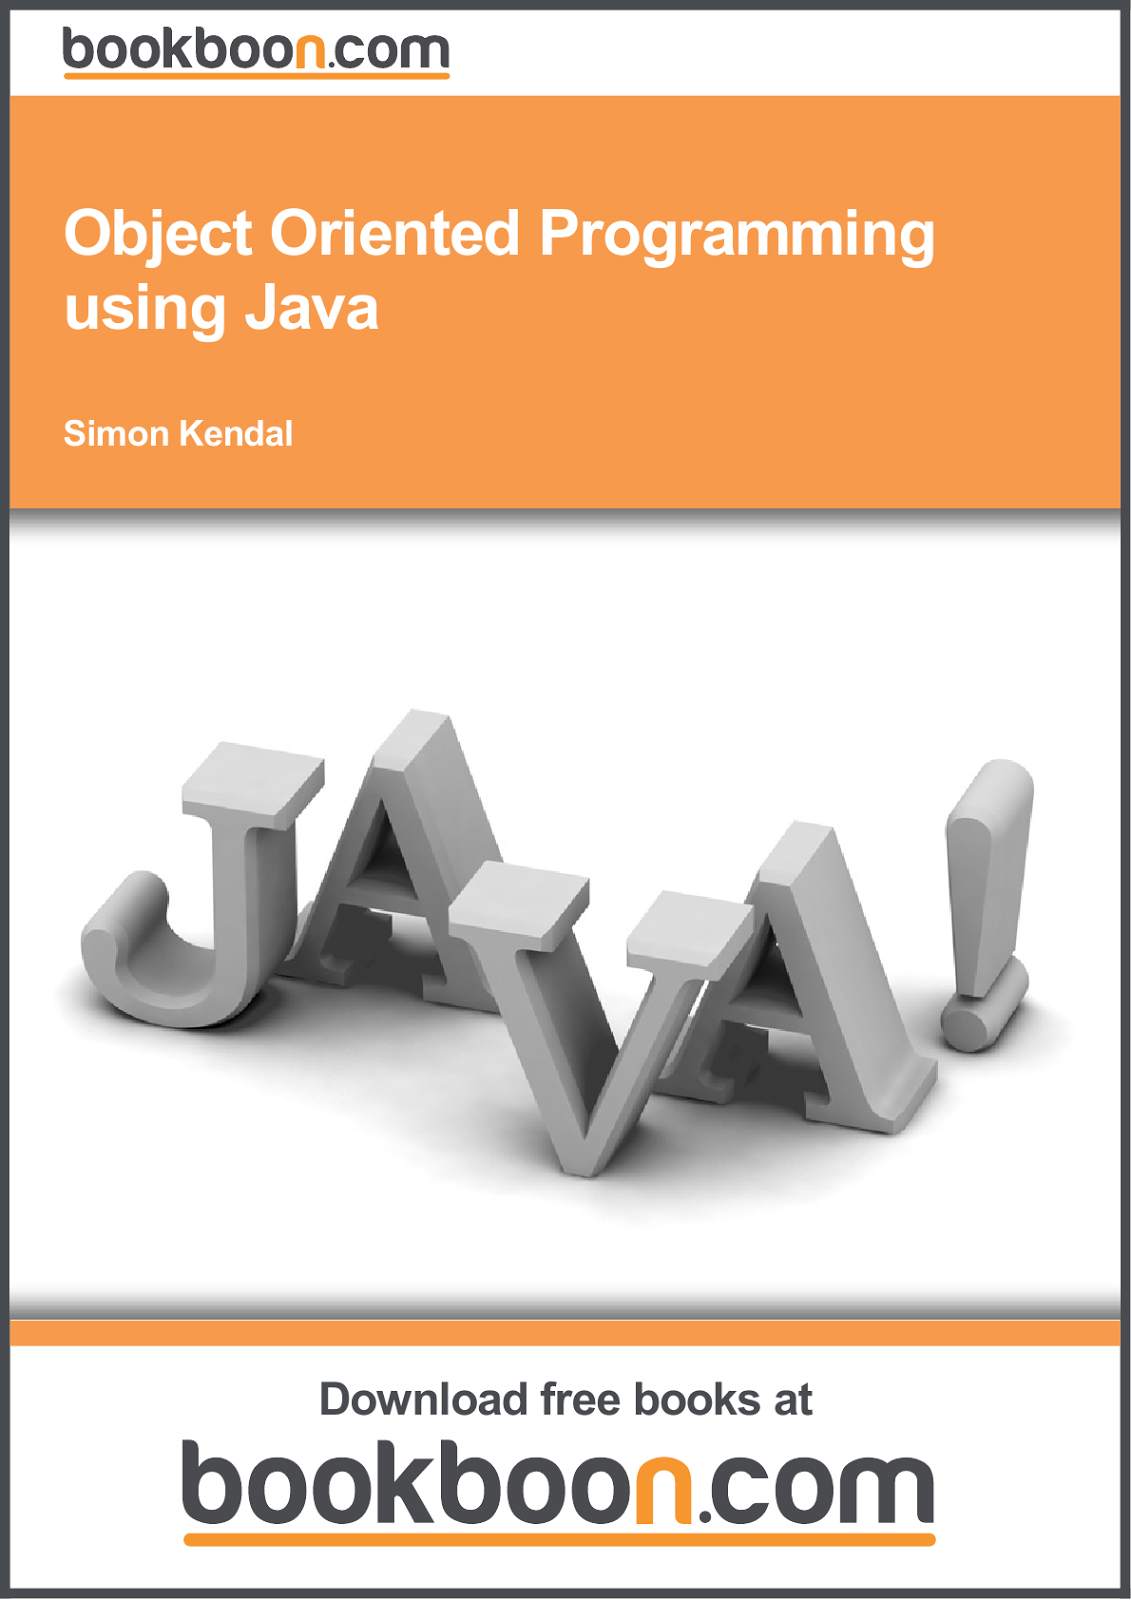 https://ia601508.us.archive.org/17/items/object-oriented-programming-using-java/object-oriented-programming-using-java.pdf